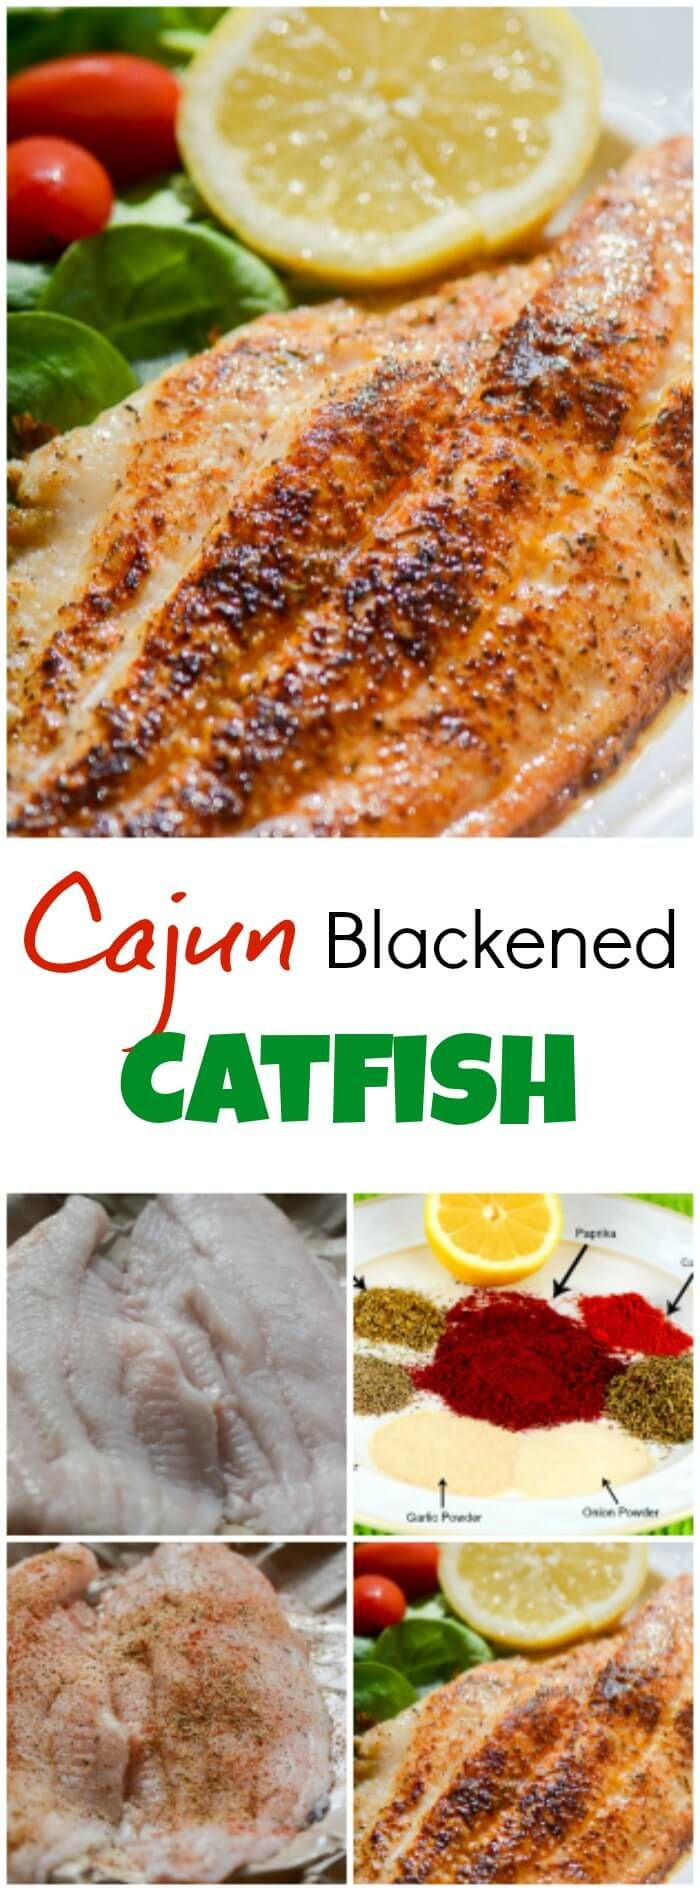 Cajun Blackened Catfish is a quick and easy, healthy, delicious, spicy seafood dish that makes an excellent weeknight supper, or Mardi Gras Dinner, and fits into most healthy eating plans, including low fat, low carb, gluten-free, and paleo. ~ http://FlavorMosaic.com